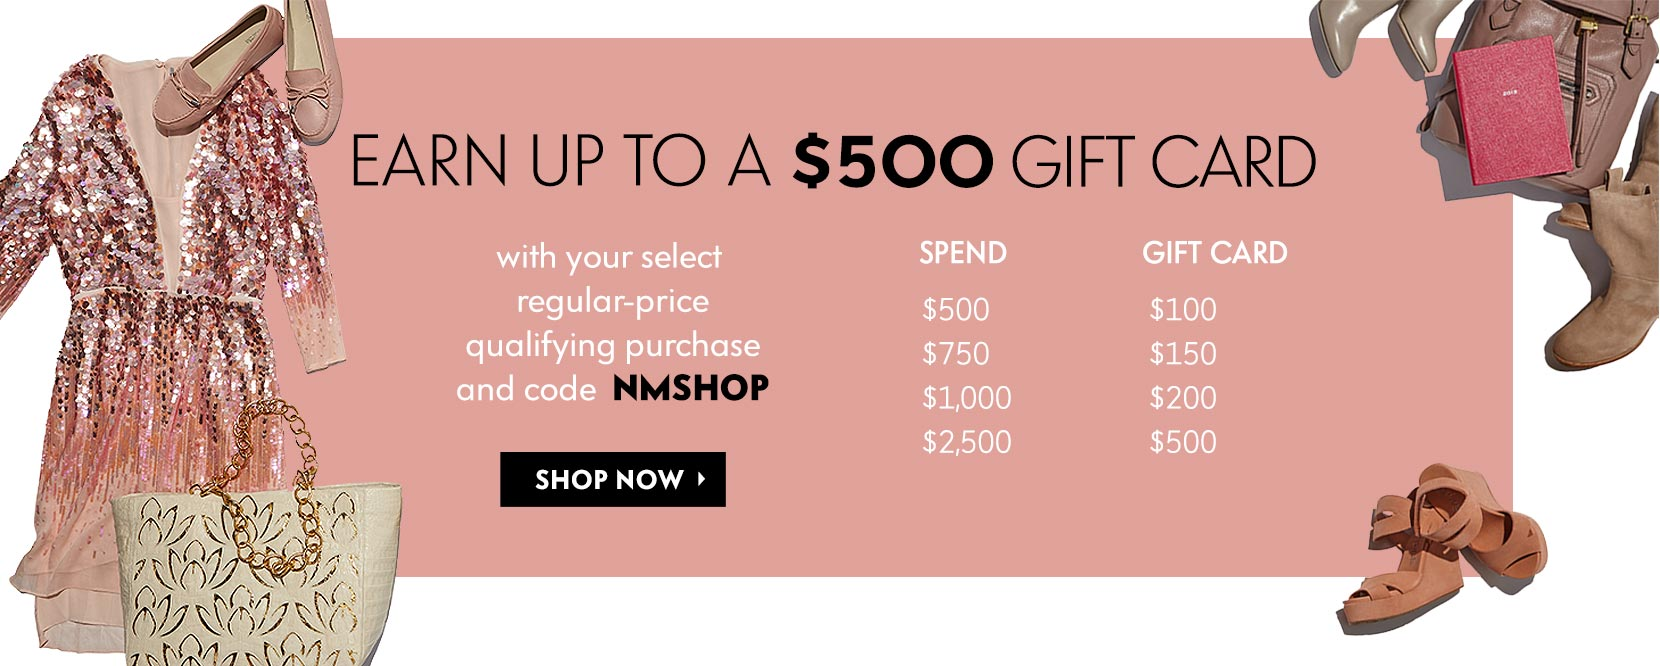 Neiman marcus credit card - Neiman Marcus Credit Card 51